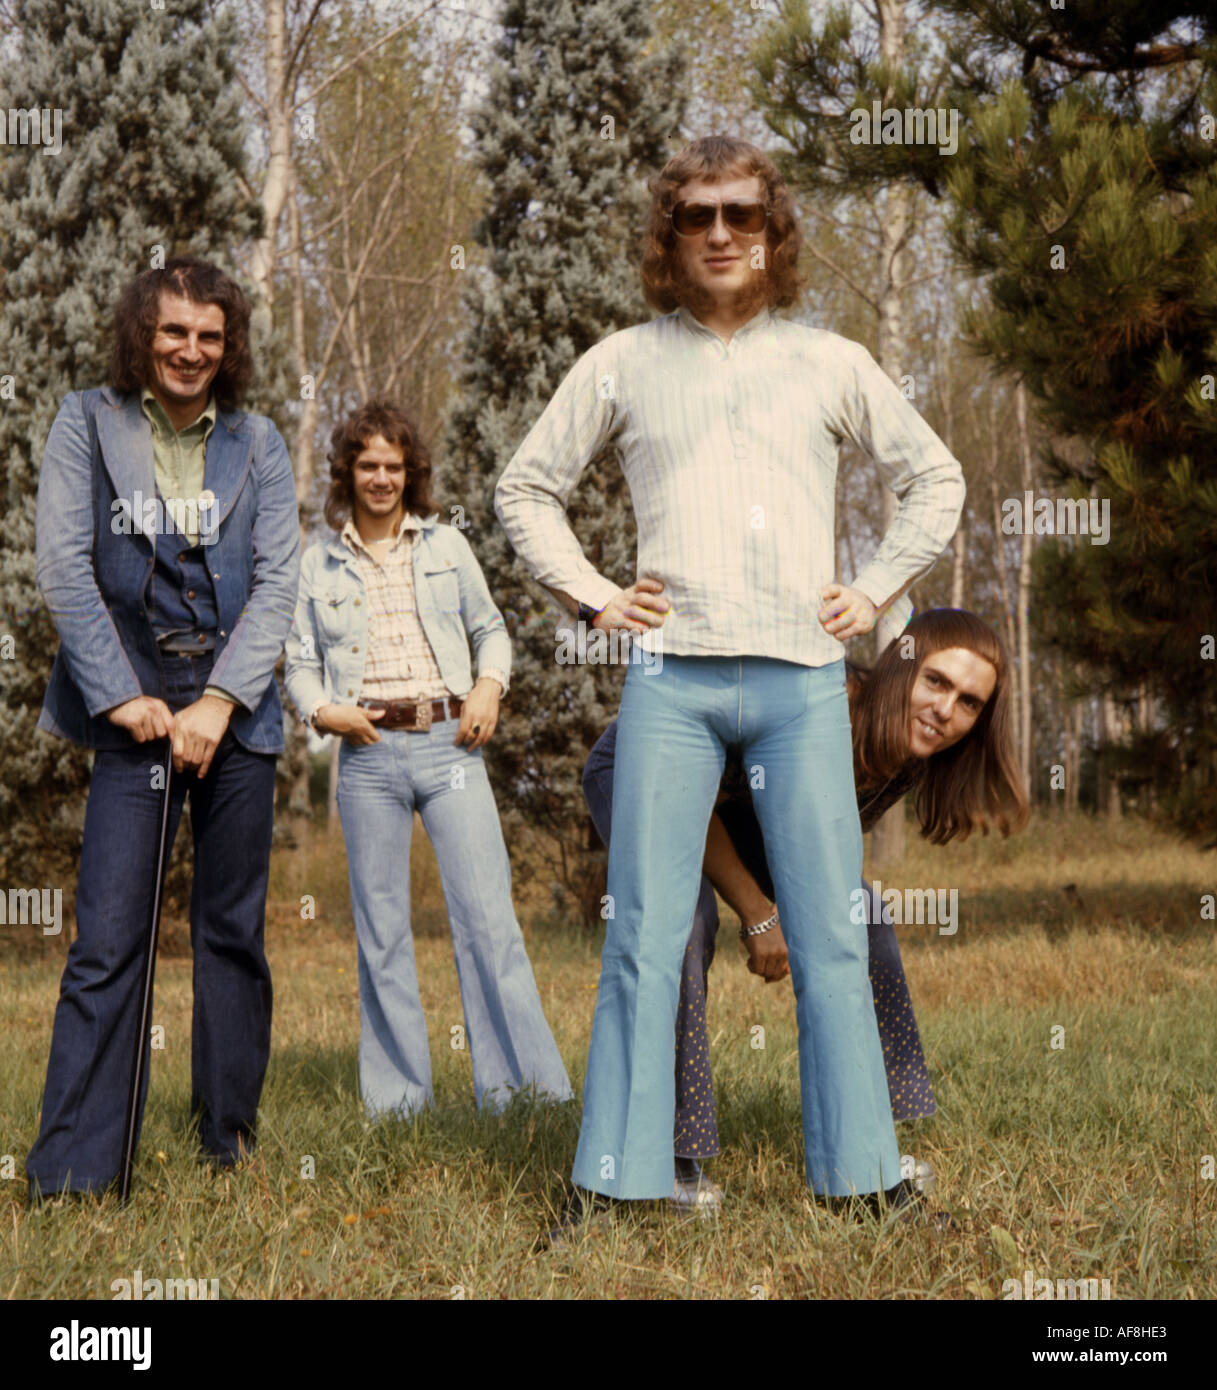 SLADE UK Glam rock group with Noddy Holder in white sweater - Stock Image